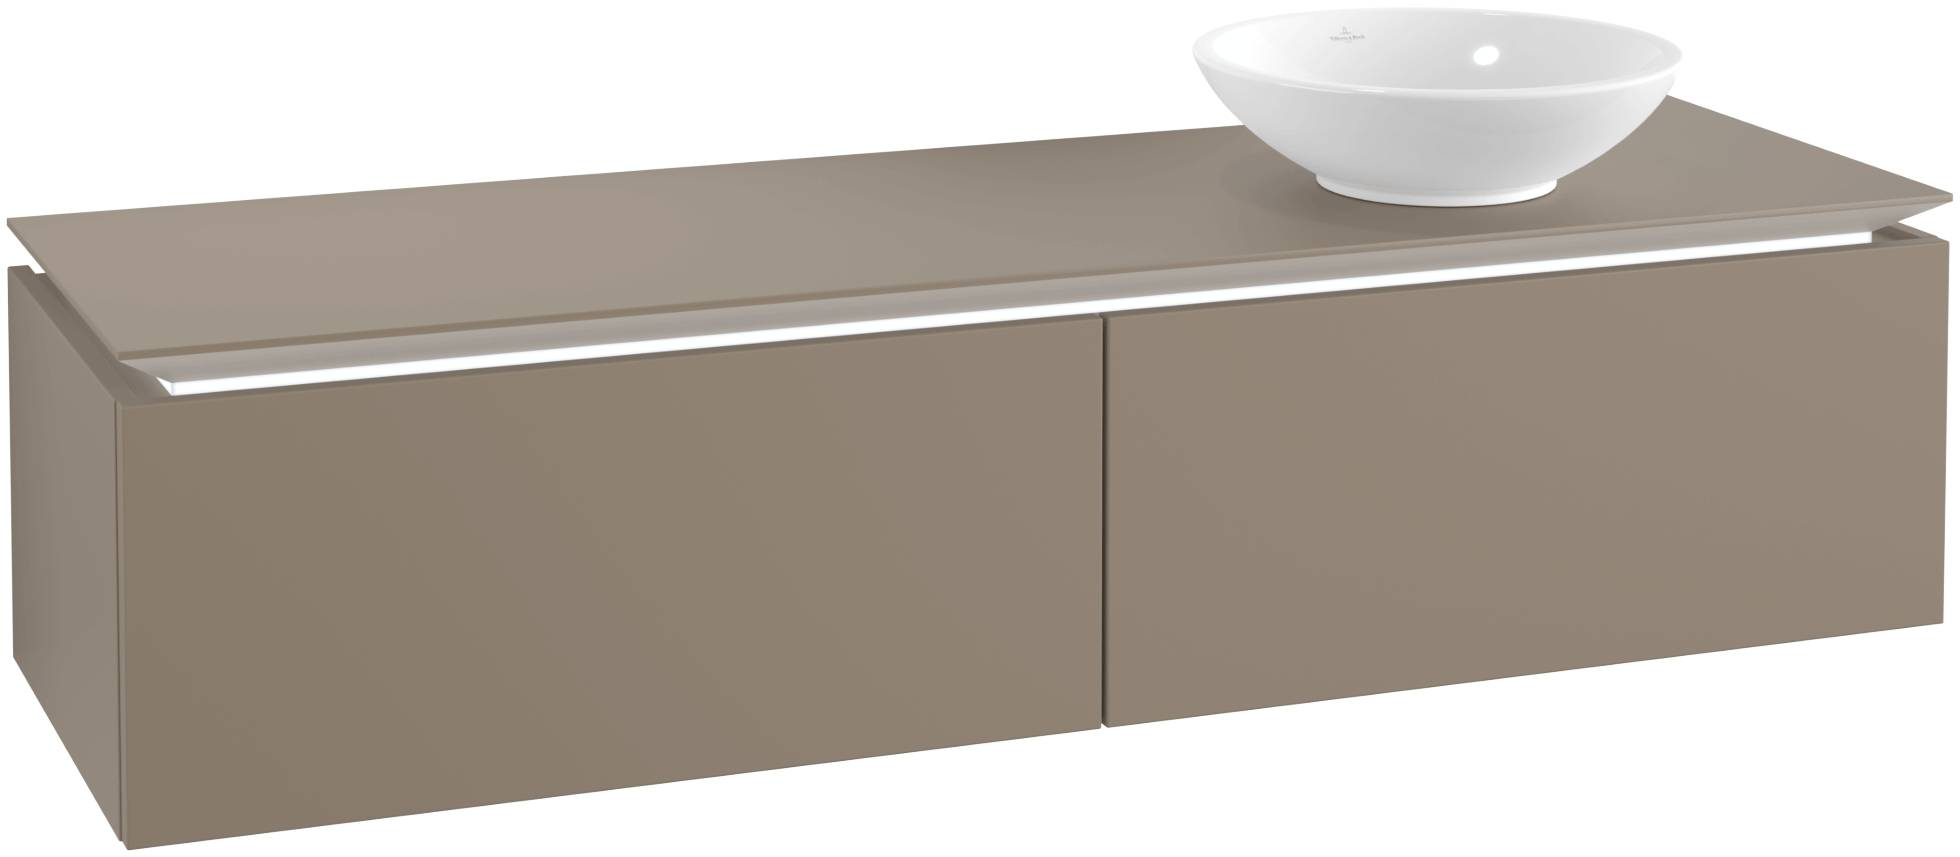 Villeroy & Boch Villeroy & Boch Legato - Meuble sous lavabo with 2 drawers & 1 cut-out right 1600 x 380 x 500mm truffle grey